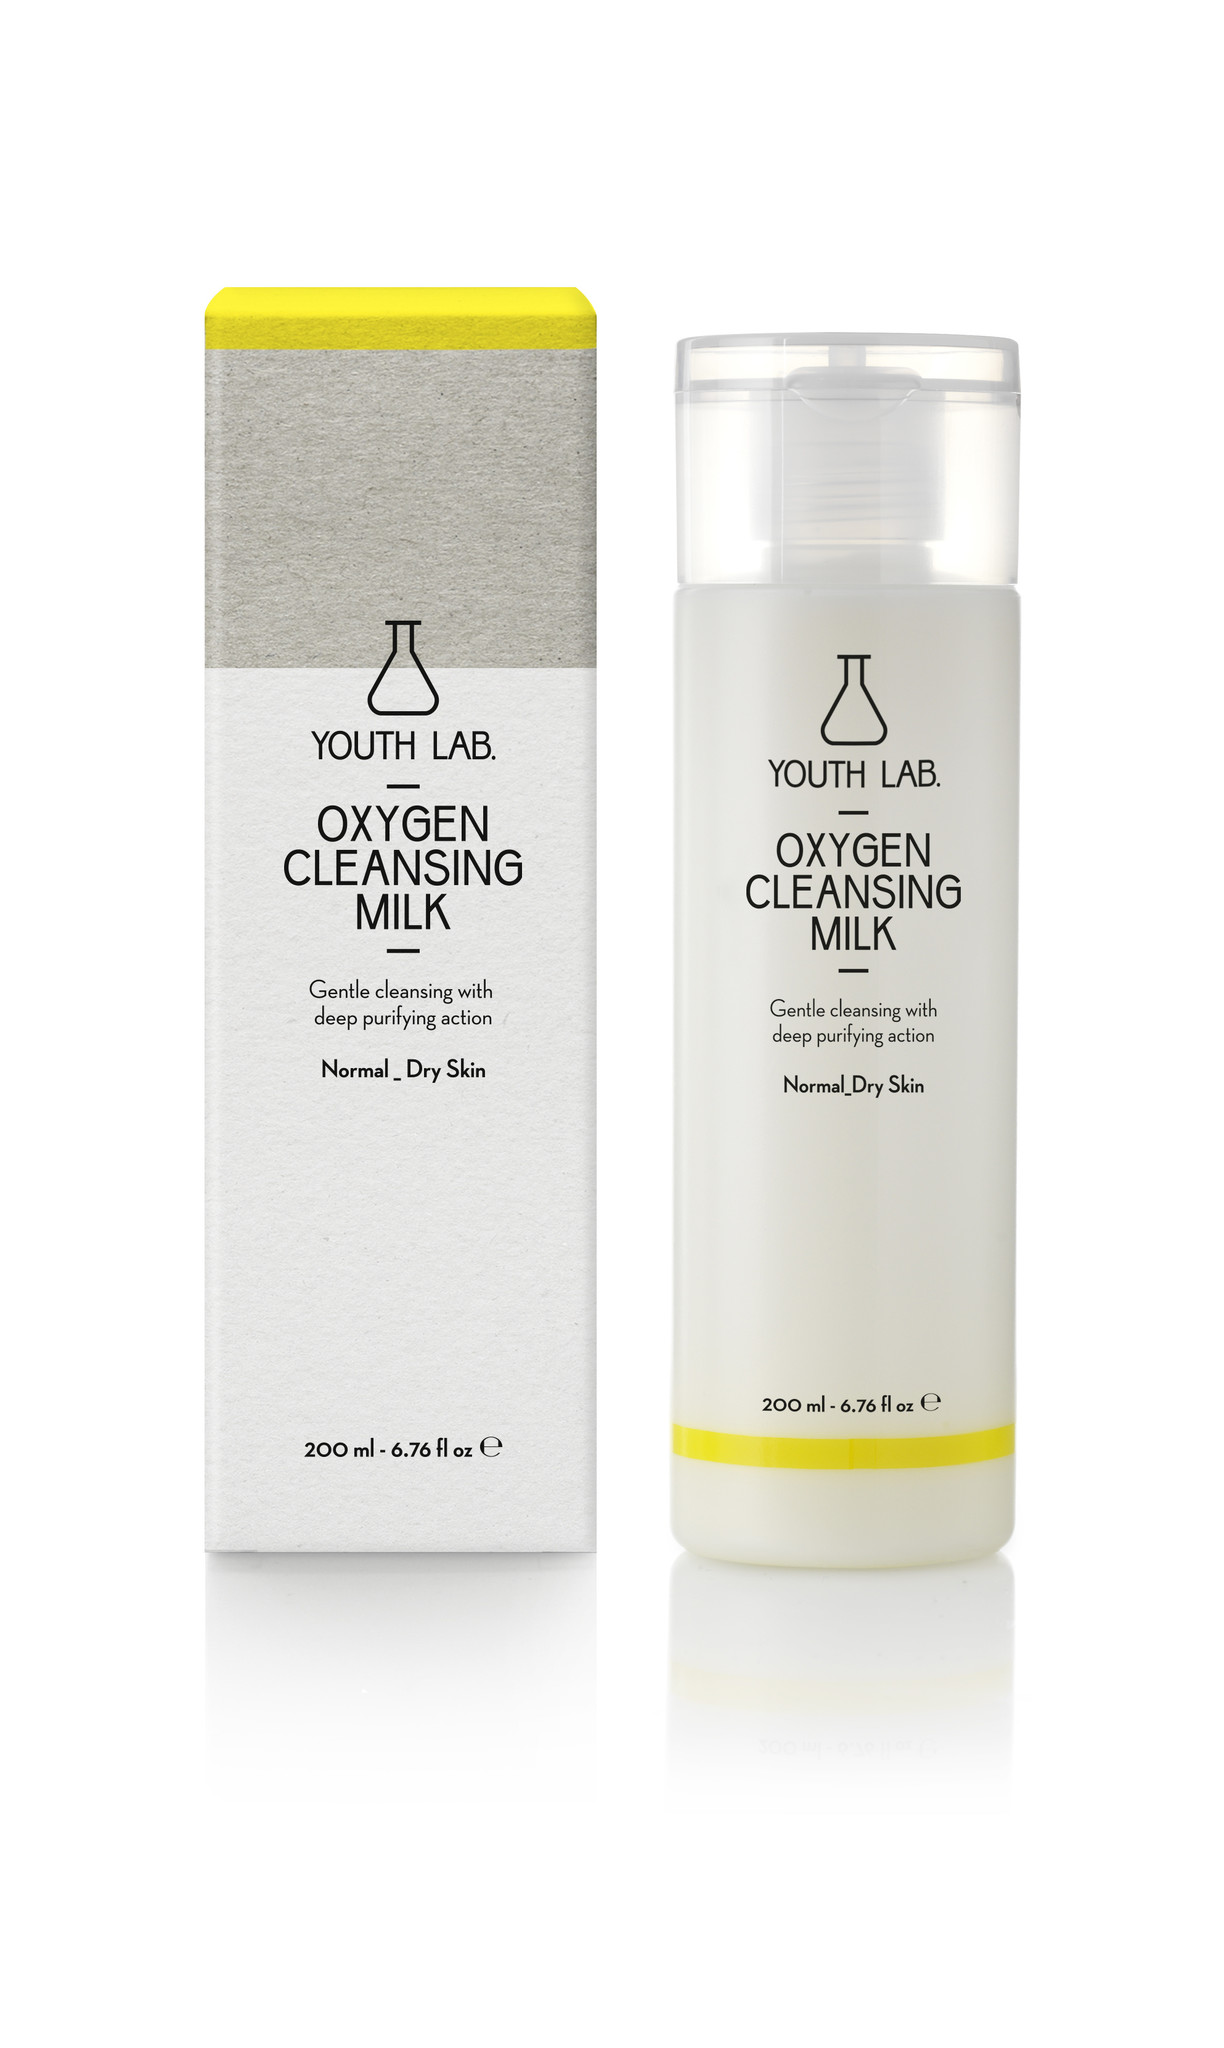 Youth Lab Youth lab Oxygen cleansing milk 200ml